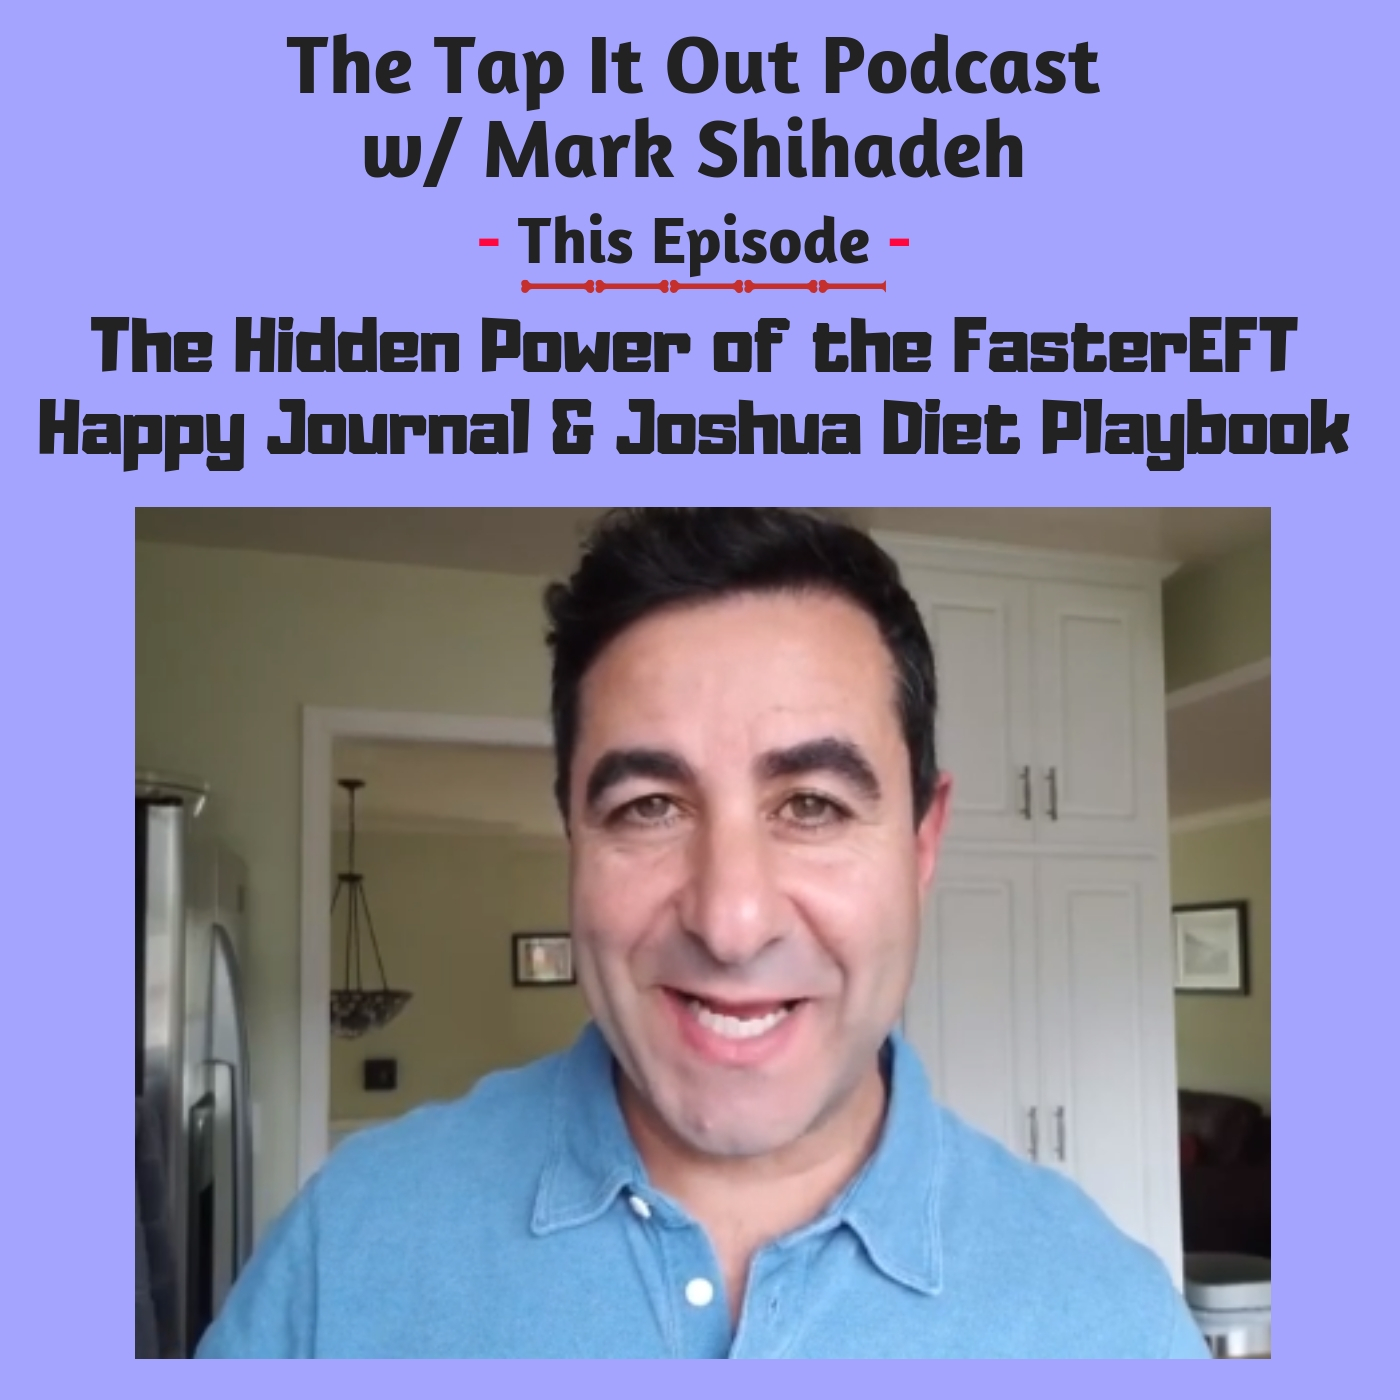 Ep 10: The Hidden Power of the FasterEFT Happy Journal & Joshua Diet Playbook